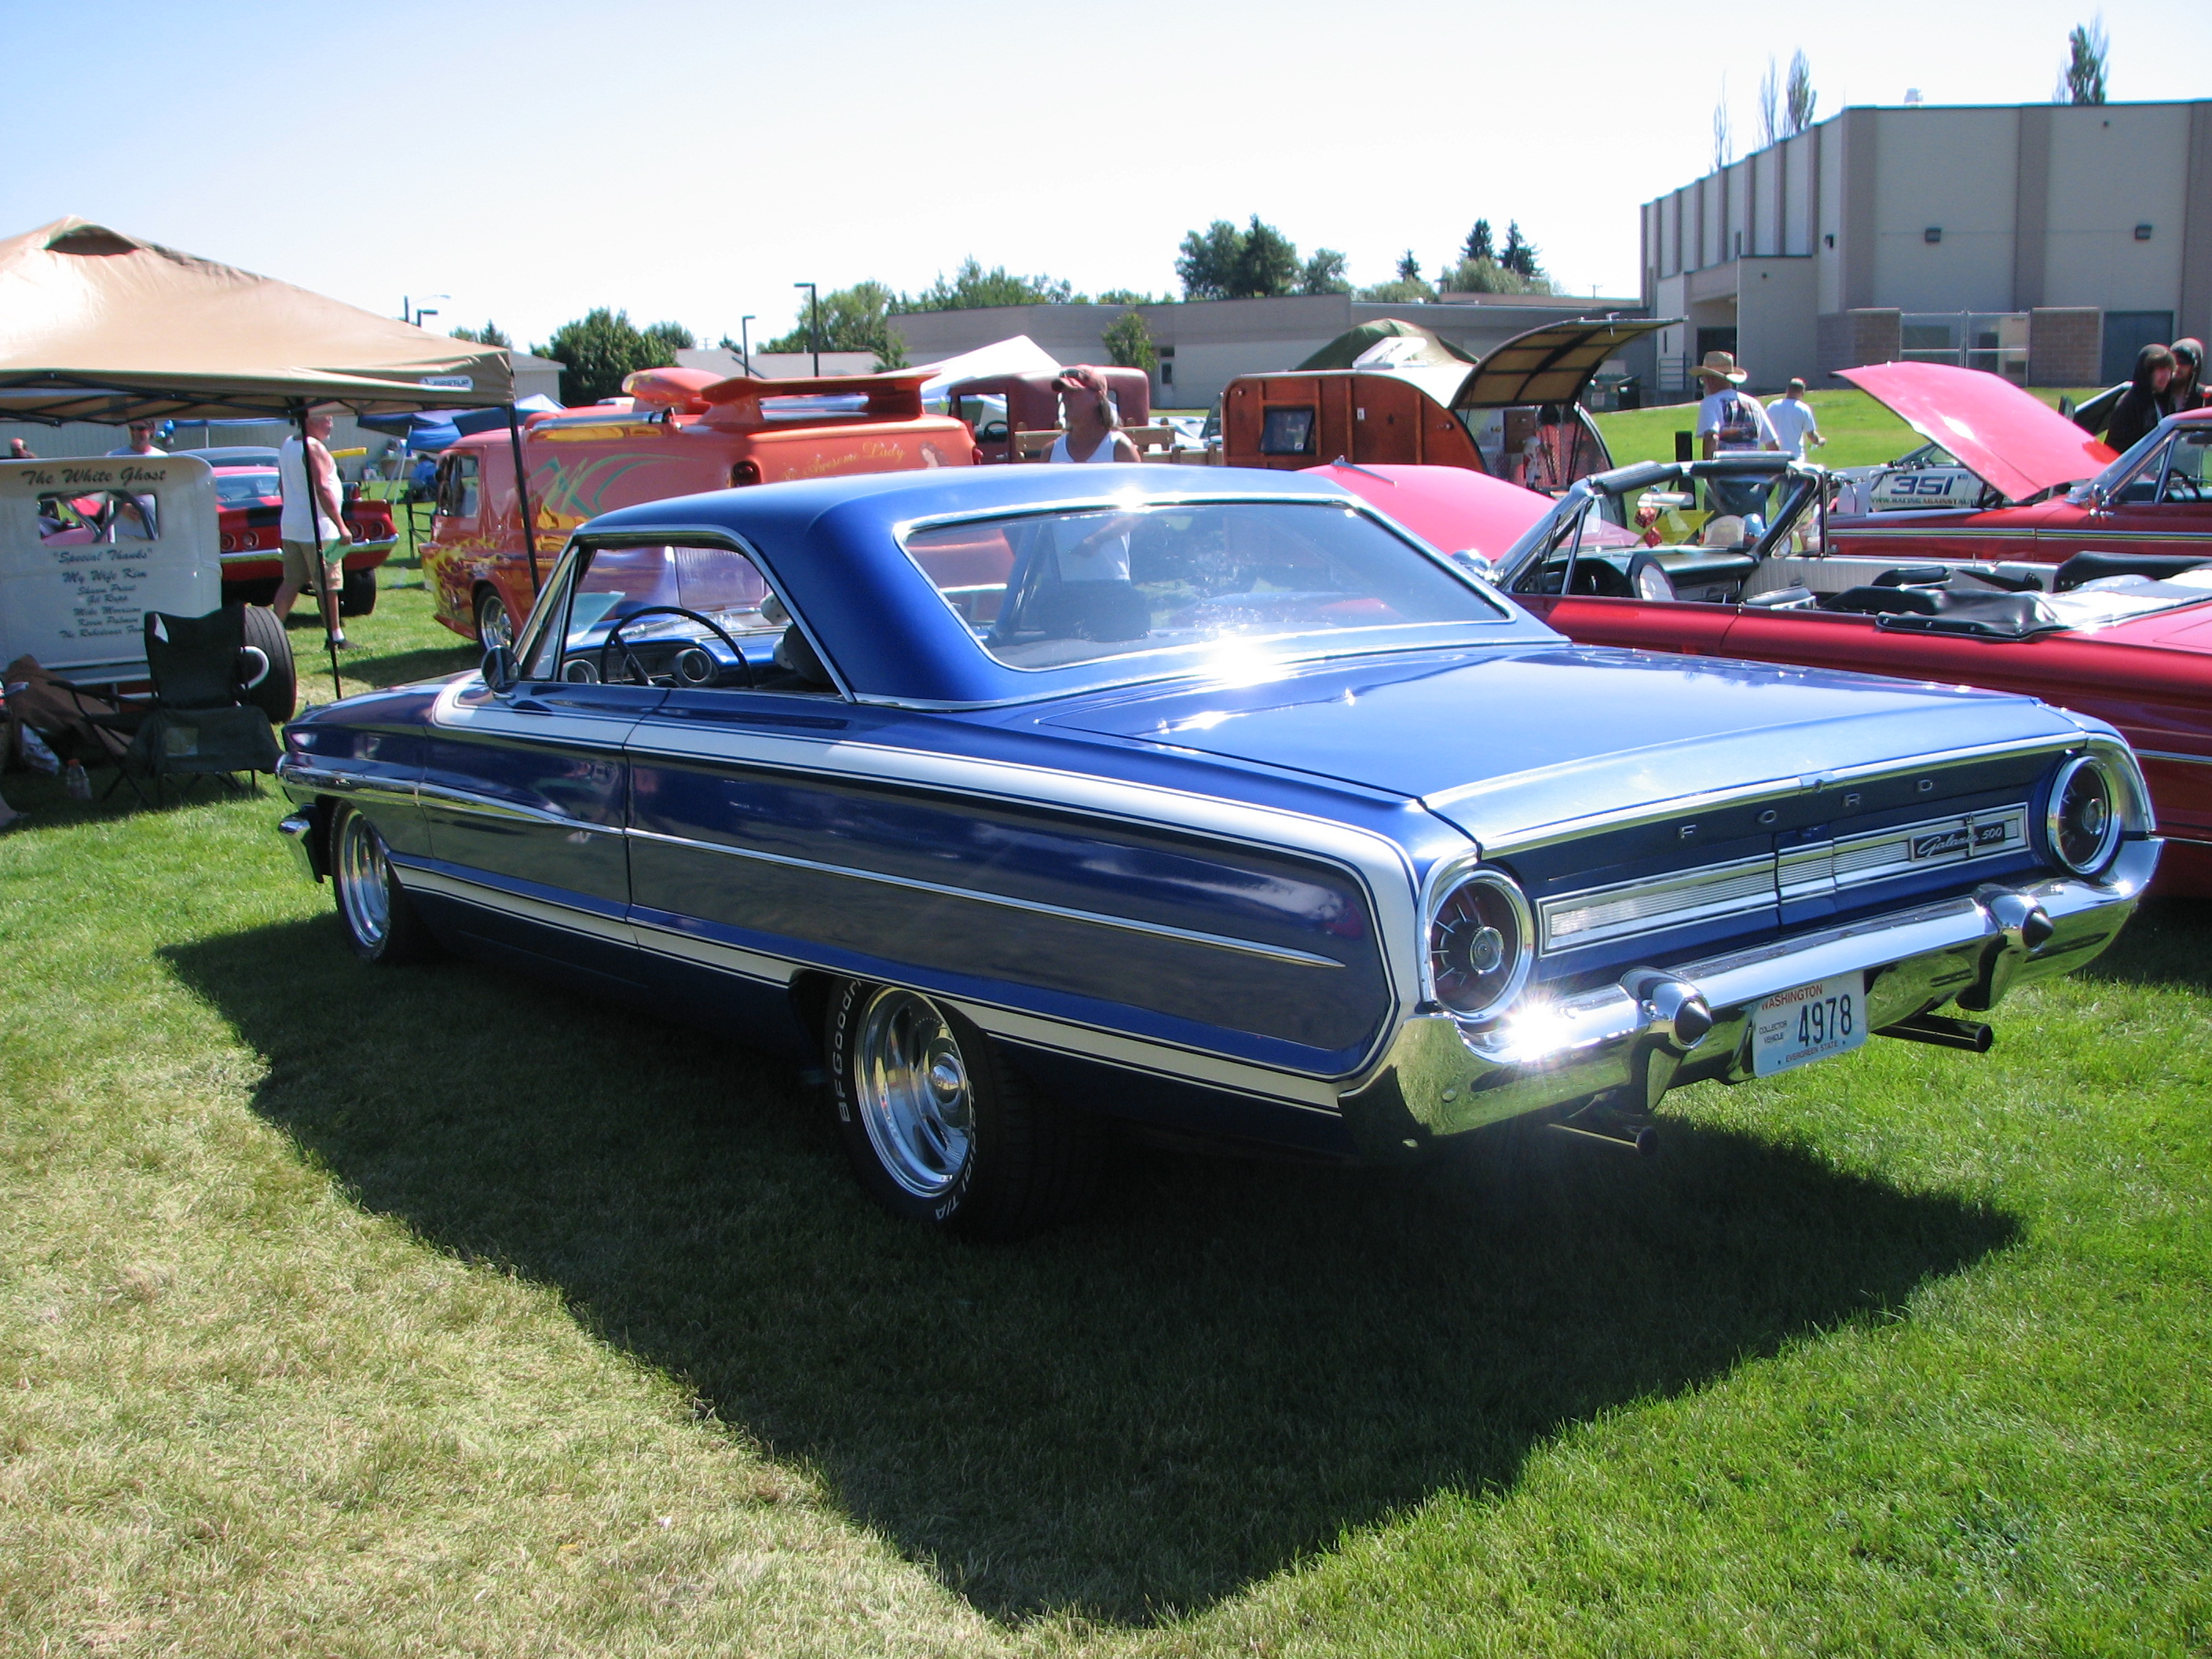 64 ford galaxie 500 lr fullsizeford. Black Bedroom Furniture Sets. Home Design Ideas